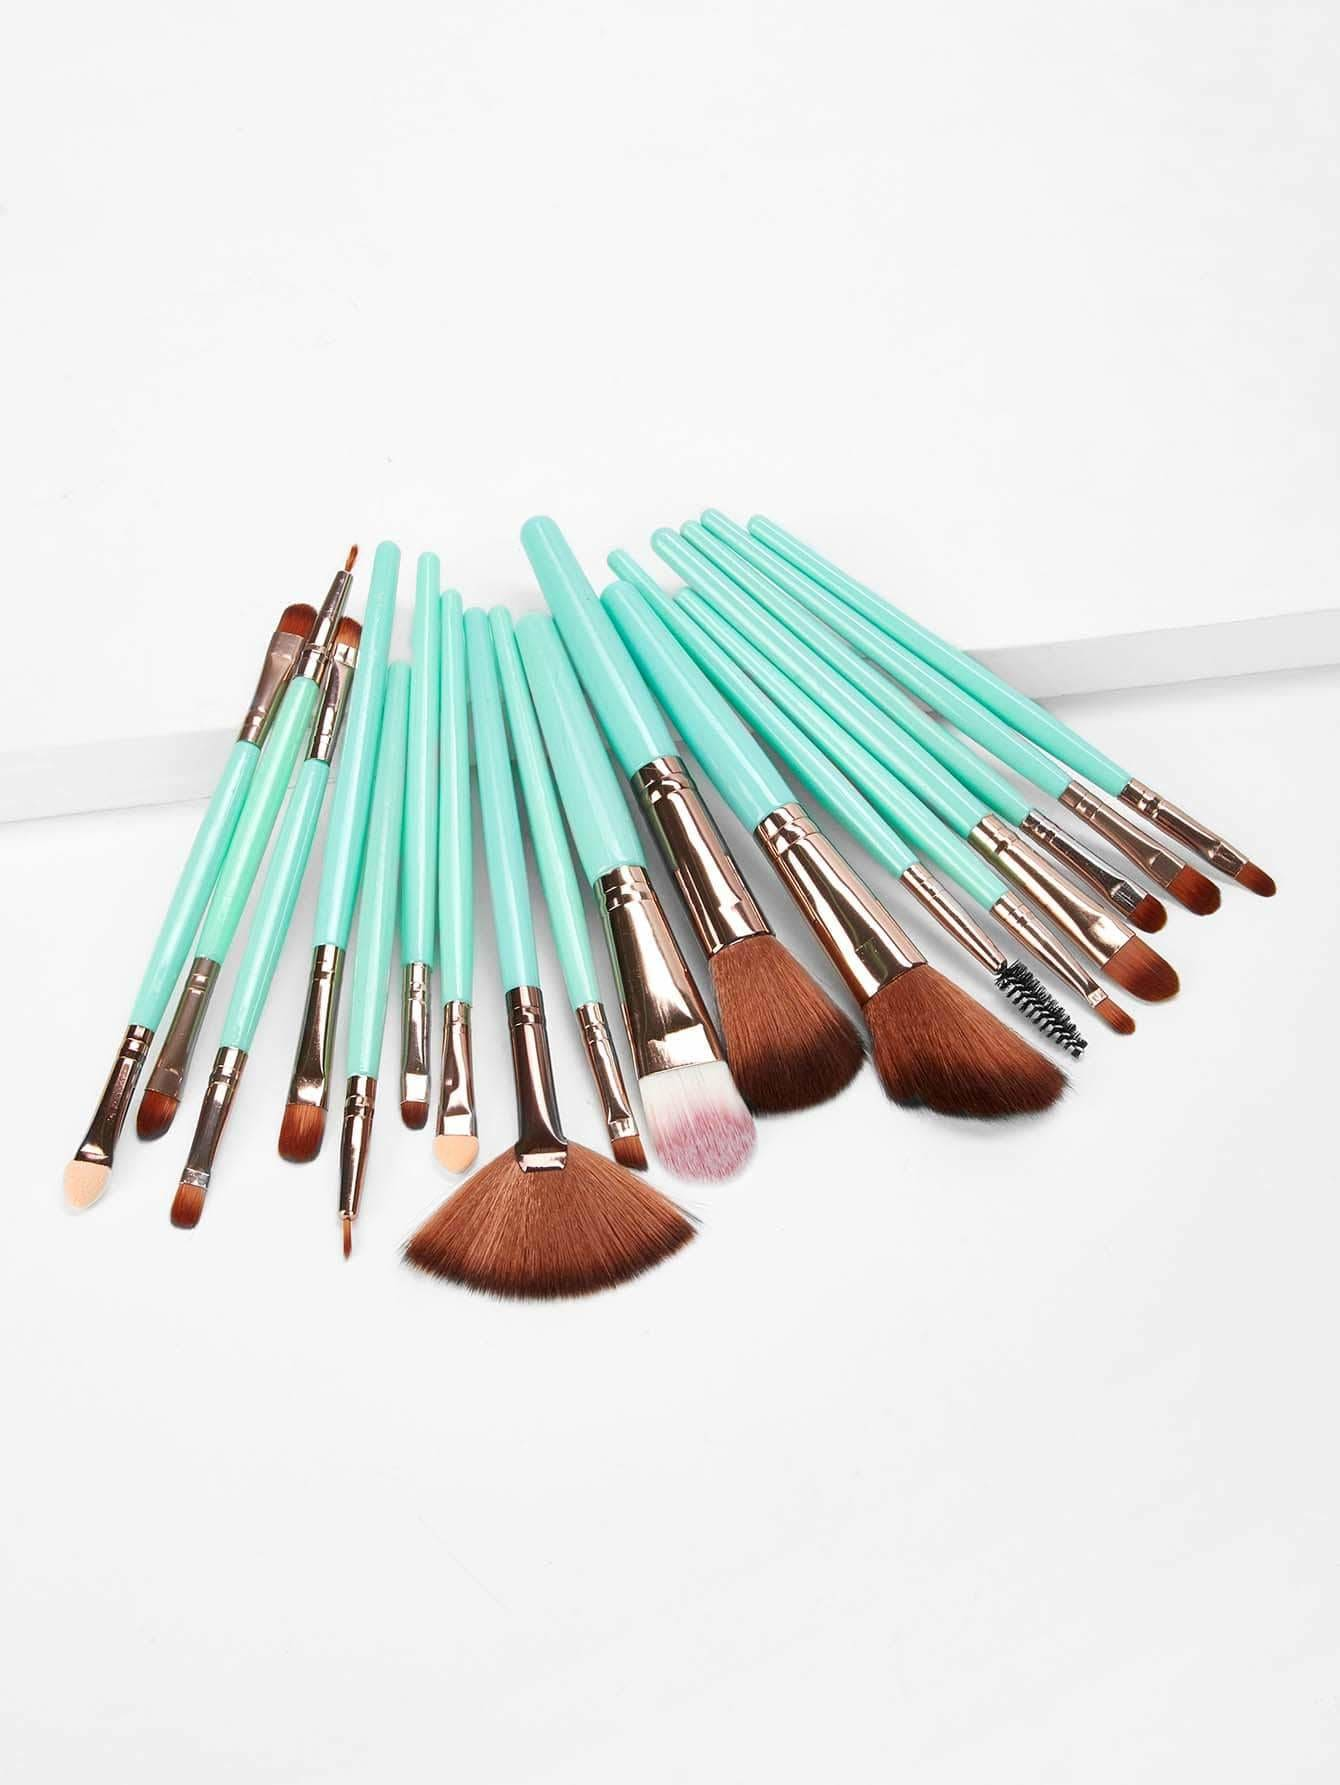 Two Tone Handle Makeup Brushes 18Pcs - Makeup Brushes